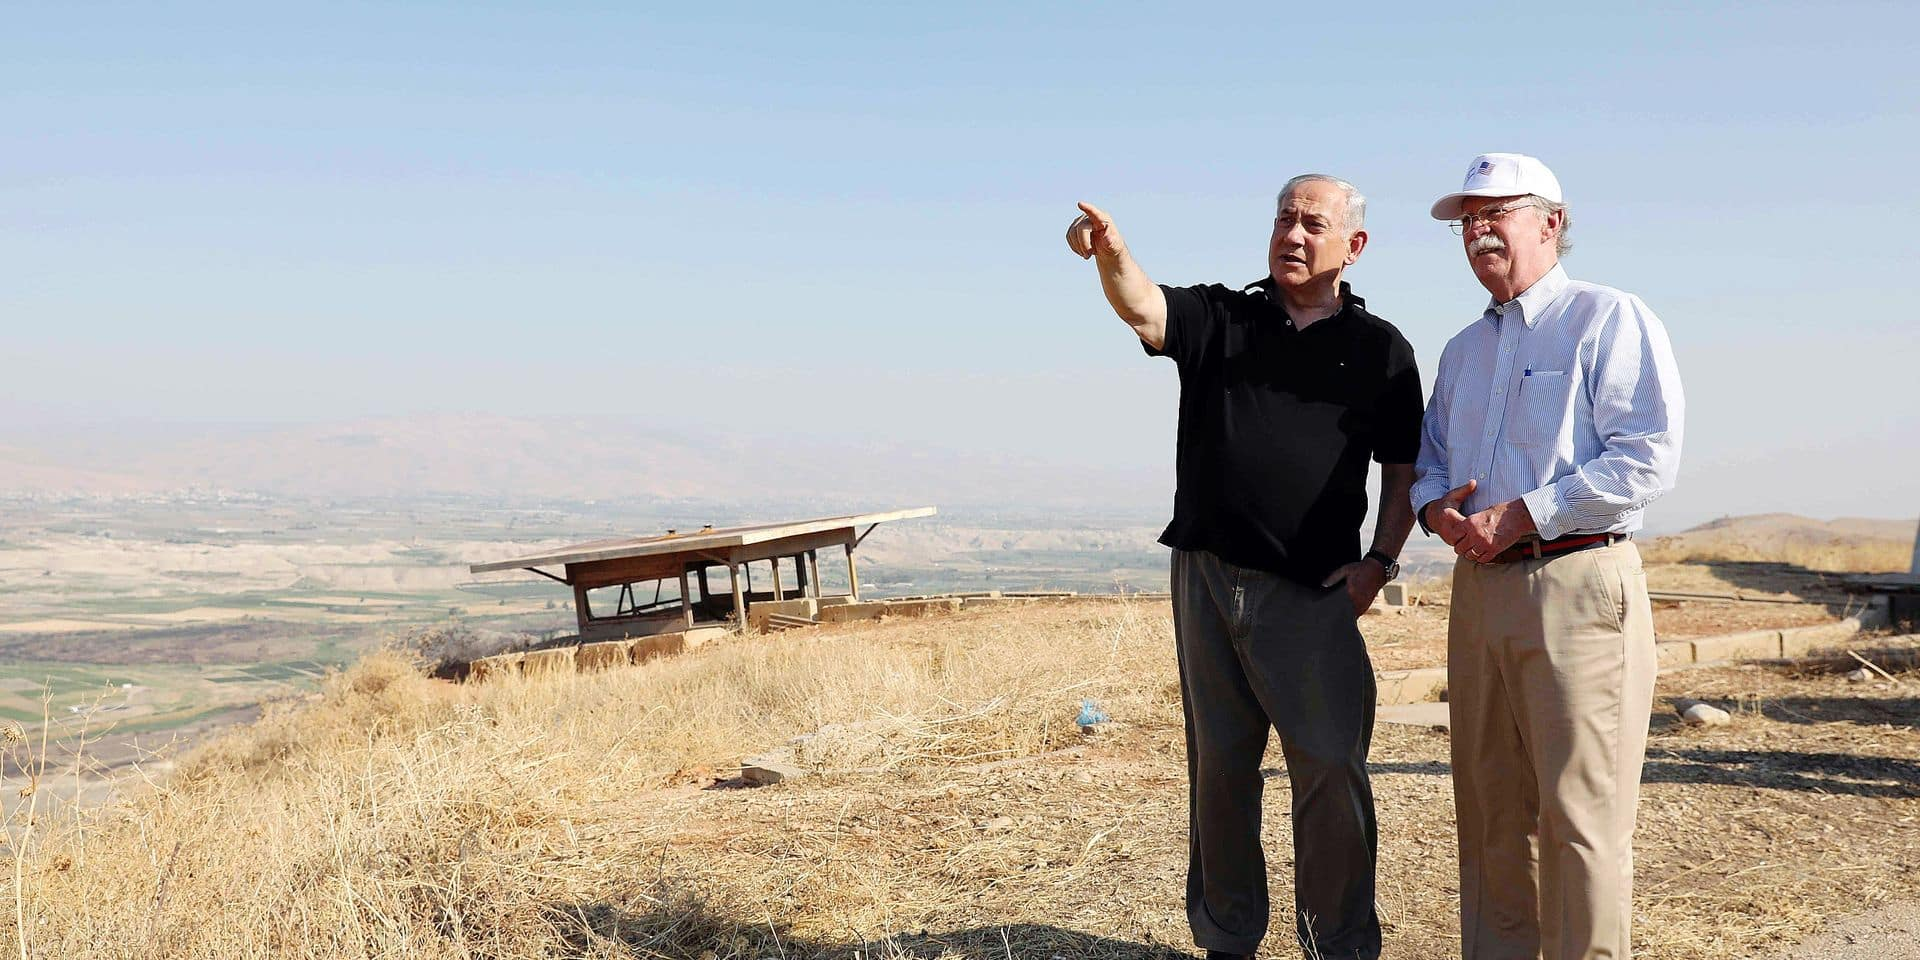 (FILES) In this file photo taken on June 23, 2019 Israeli Prime Minister Benjamin Netanyahu and then-US National Security Advisor John Bolton (R) visit an old army outpost overlooking the Jordan Valley between the Israeli city of Beit Shean and the West Bank city of Jericho, on June 23, 2019. - Israeli Prime Minister Benjamin Netanyahu issued a deeply controversial pledge on Tuesday to annex the Jordan Valley in the occupied West Bank if re-elected in September 17 polls. (Photo by ABIR SULTAN / POOL / AFP)